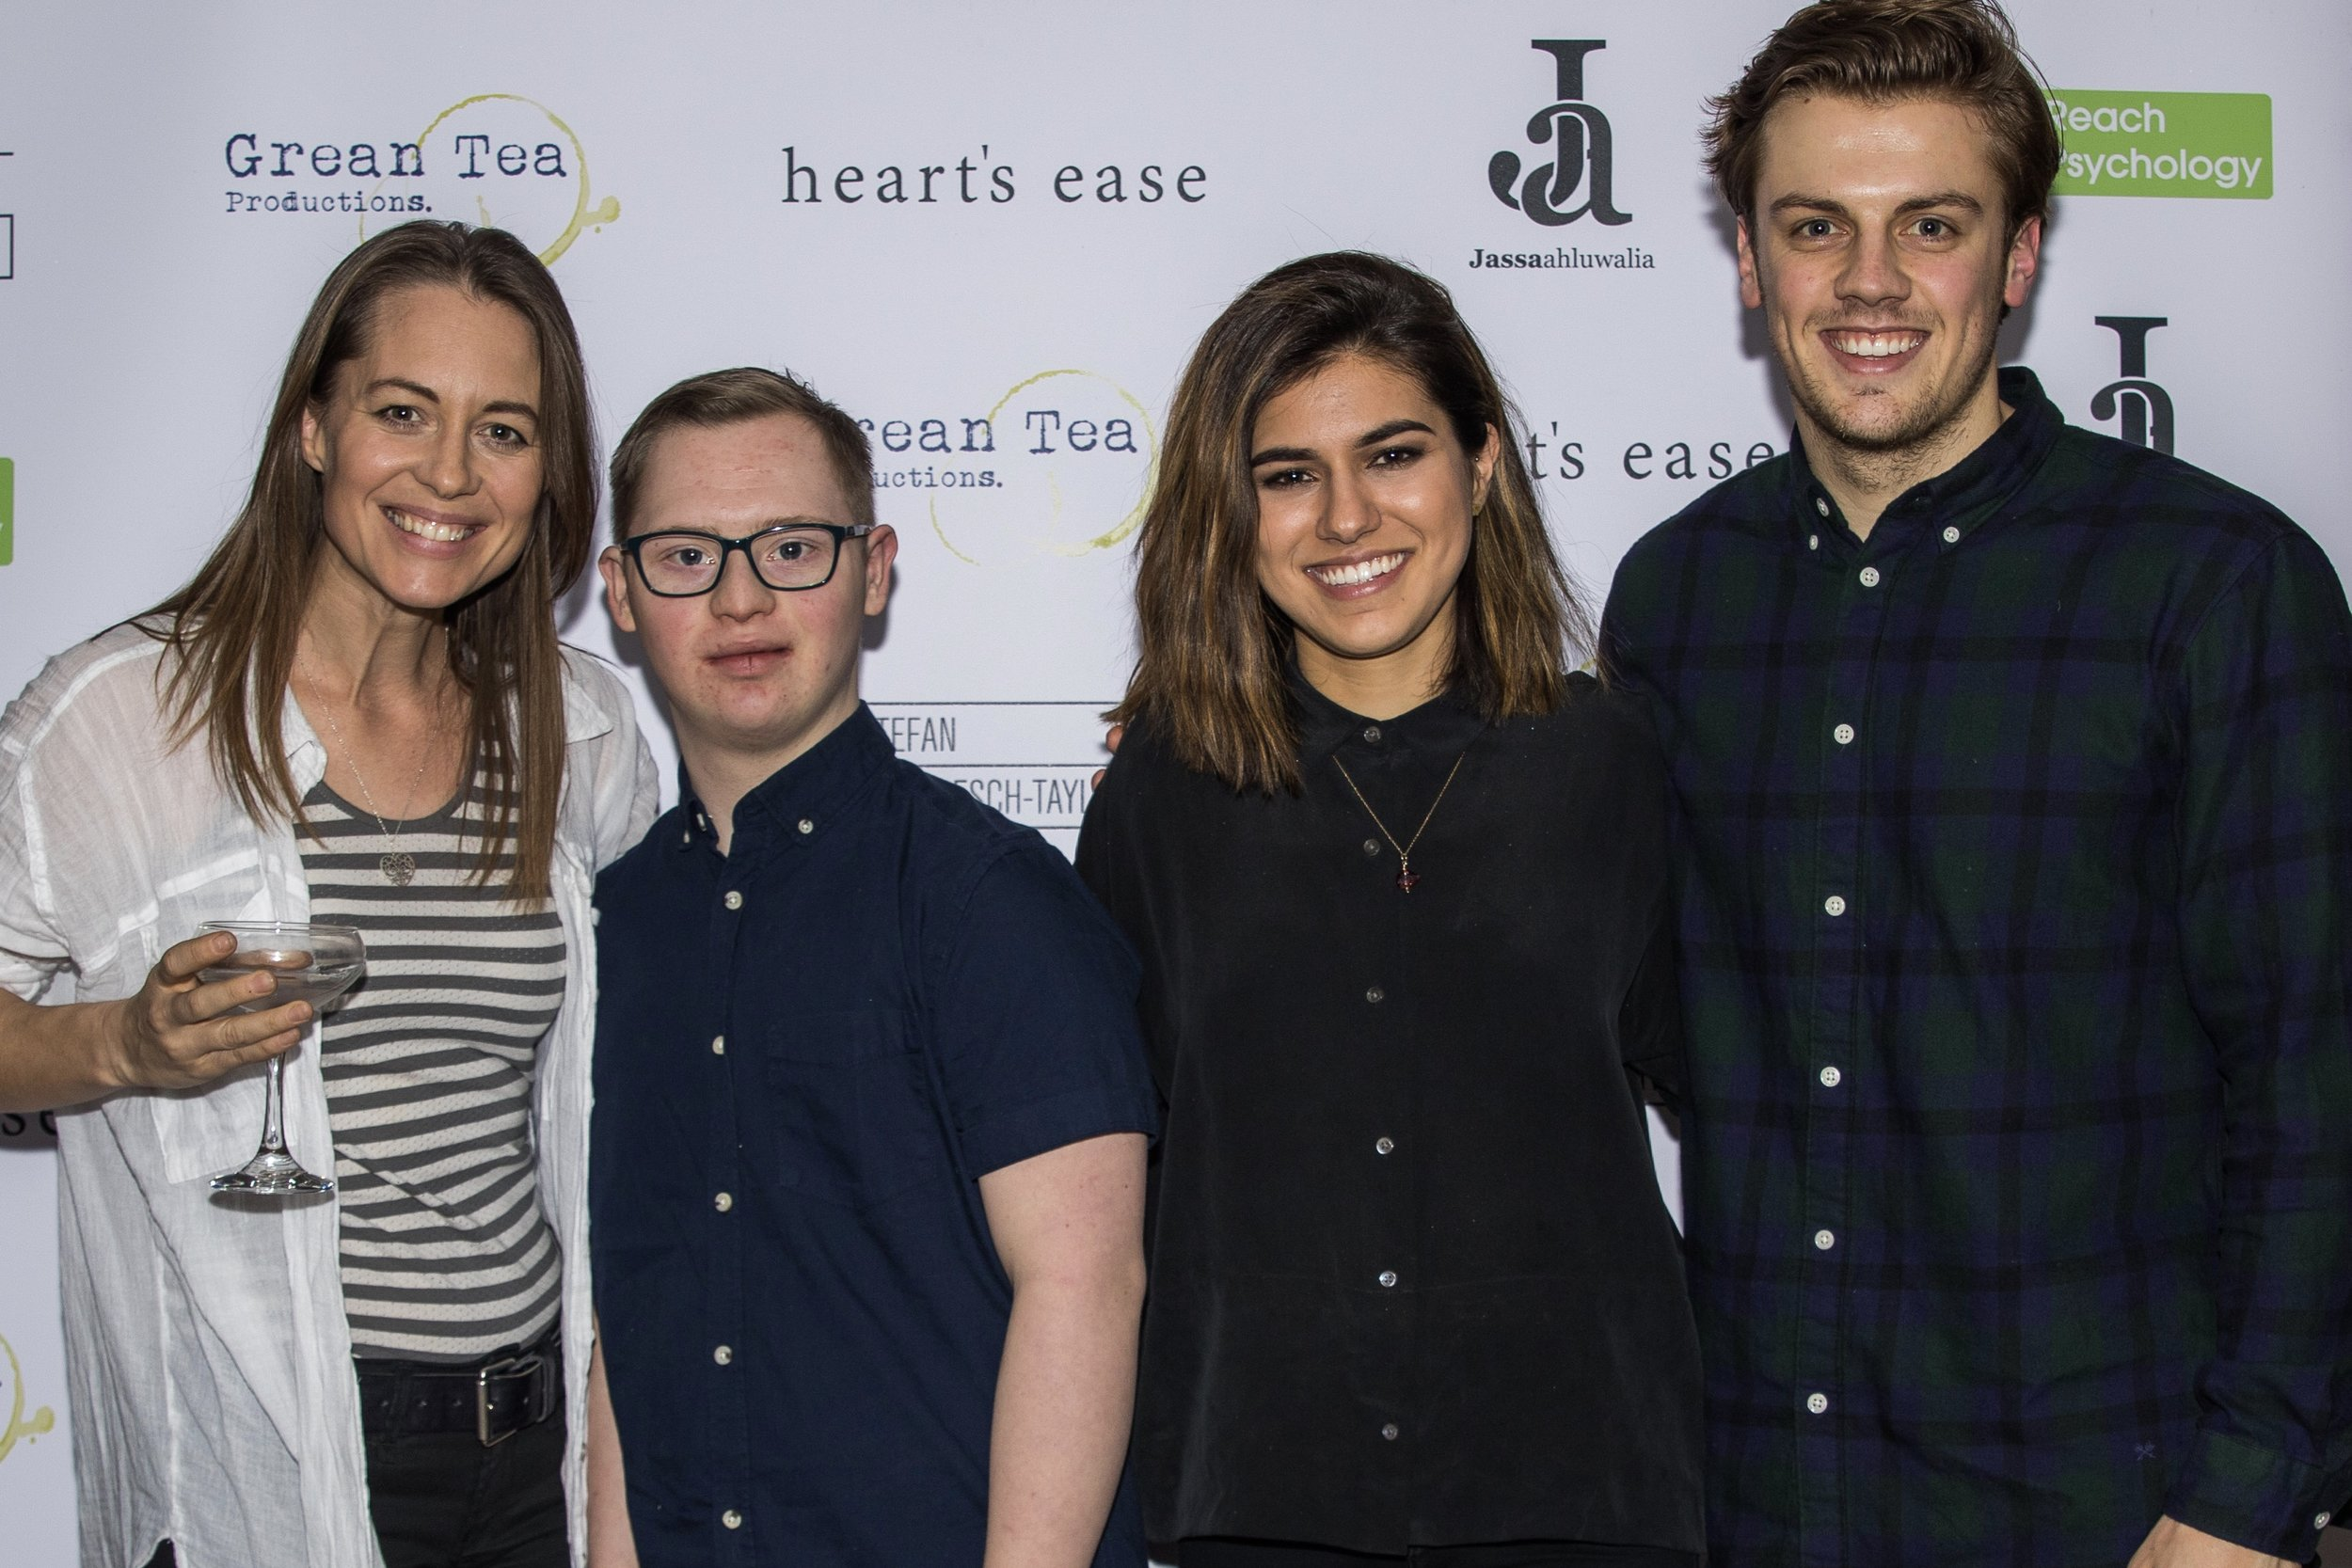 Kezia Burrows, Tom Dann, Ramanique Ahluwalia and Matthew Marrs attend the cast and crew screening of Heart's Ease.